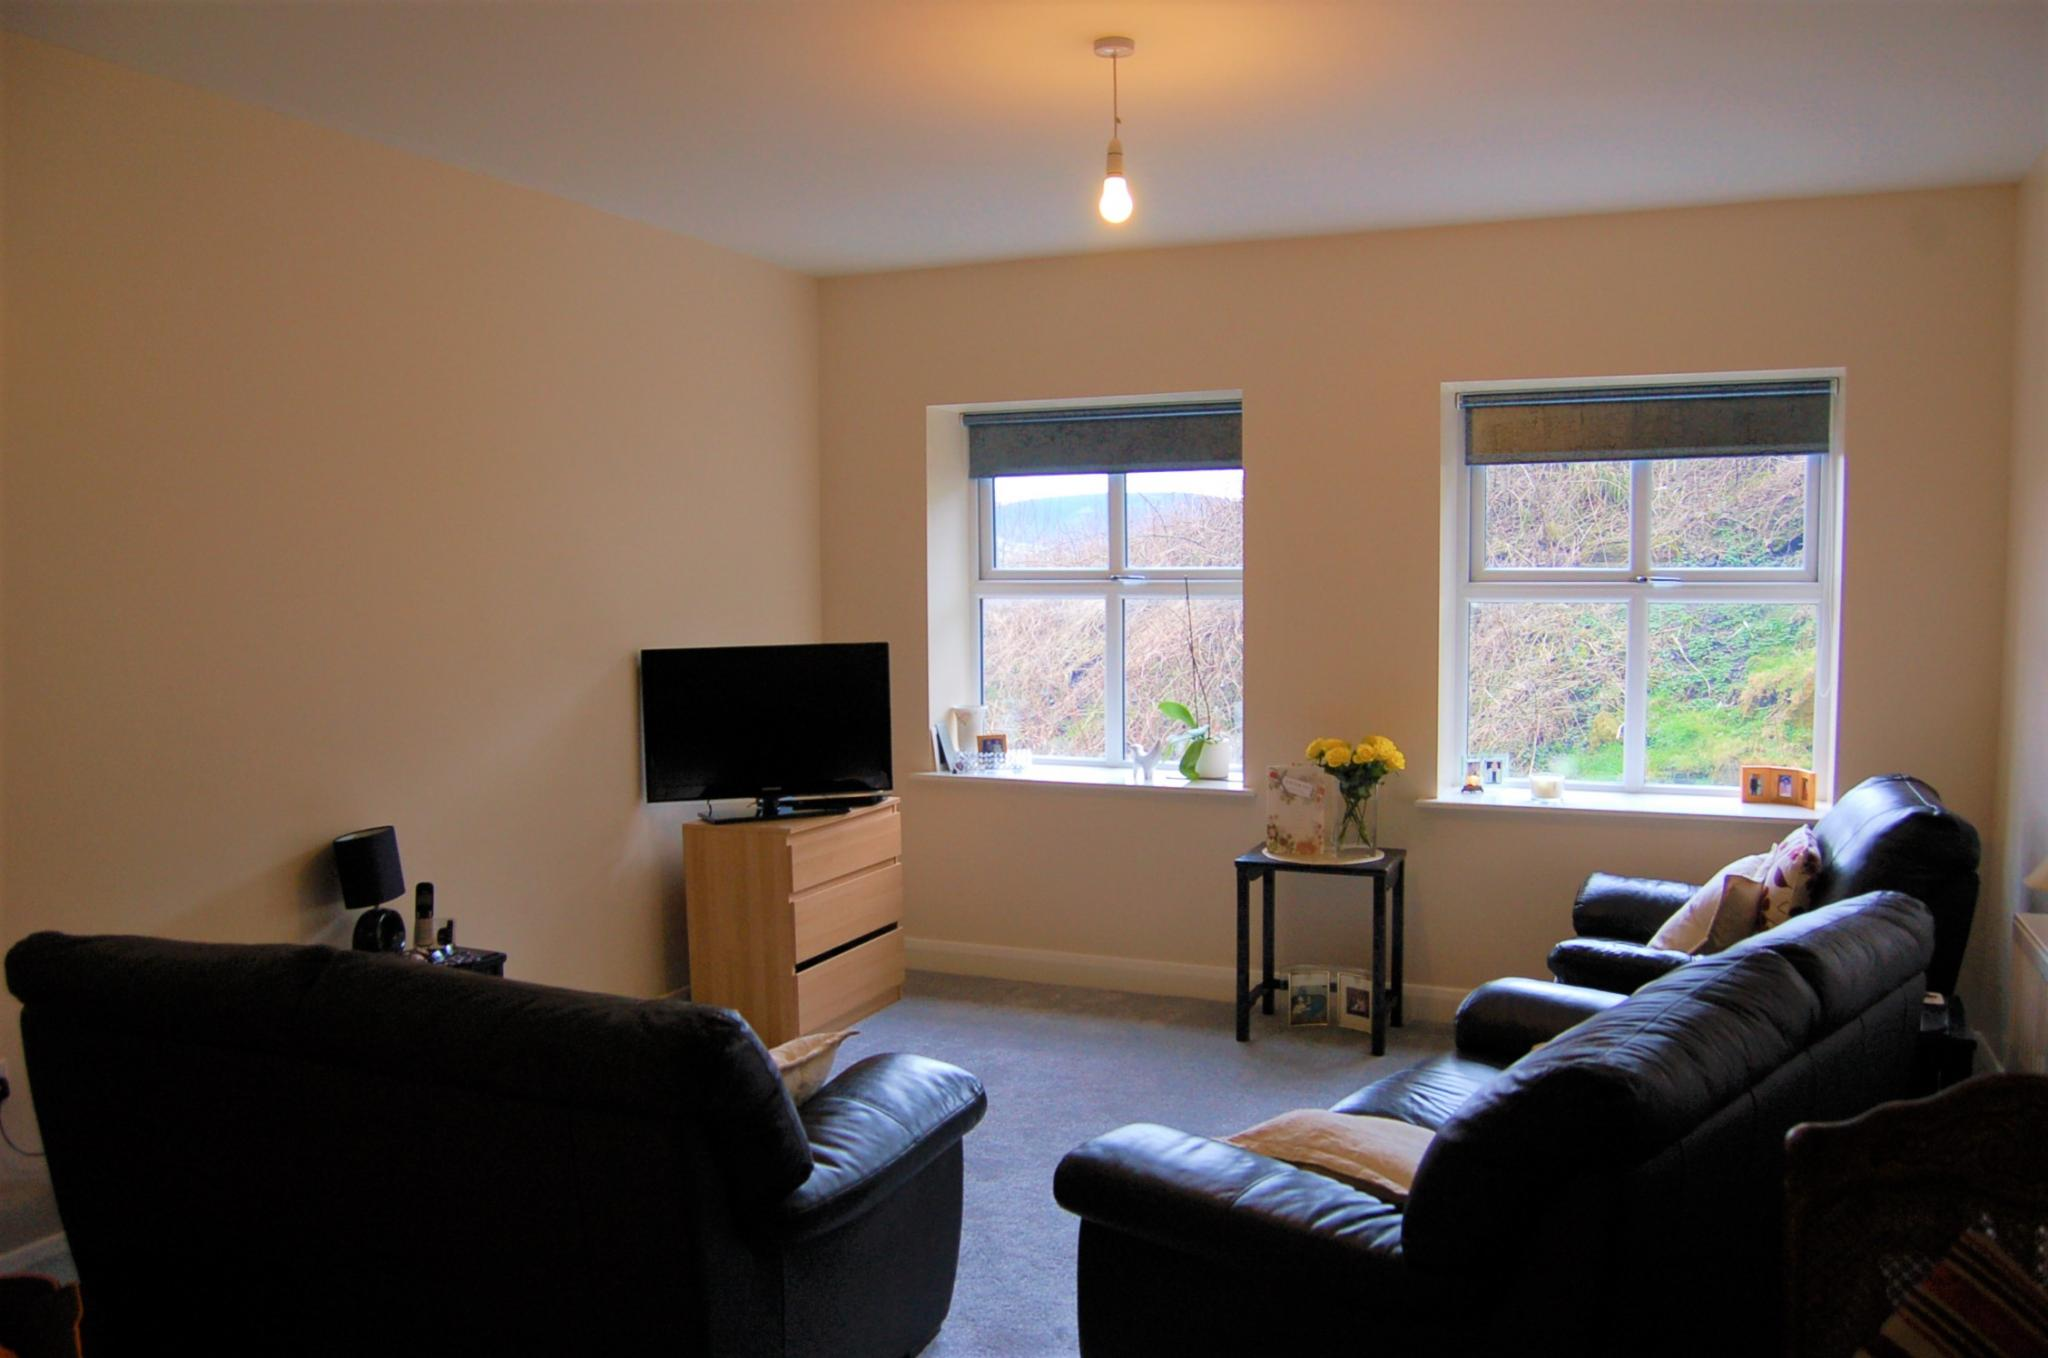 2 bedroom duplex flat/apartment For Sale in Mossley - Property photograph